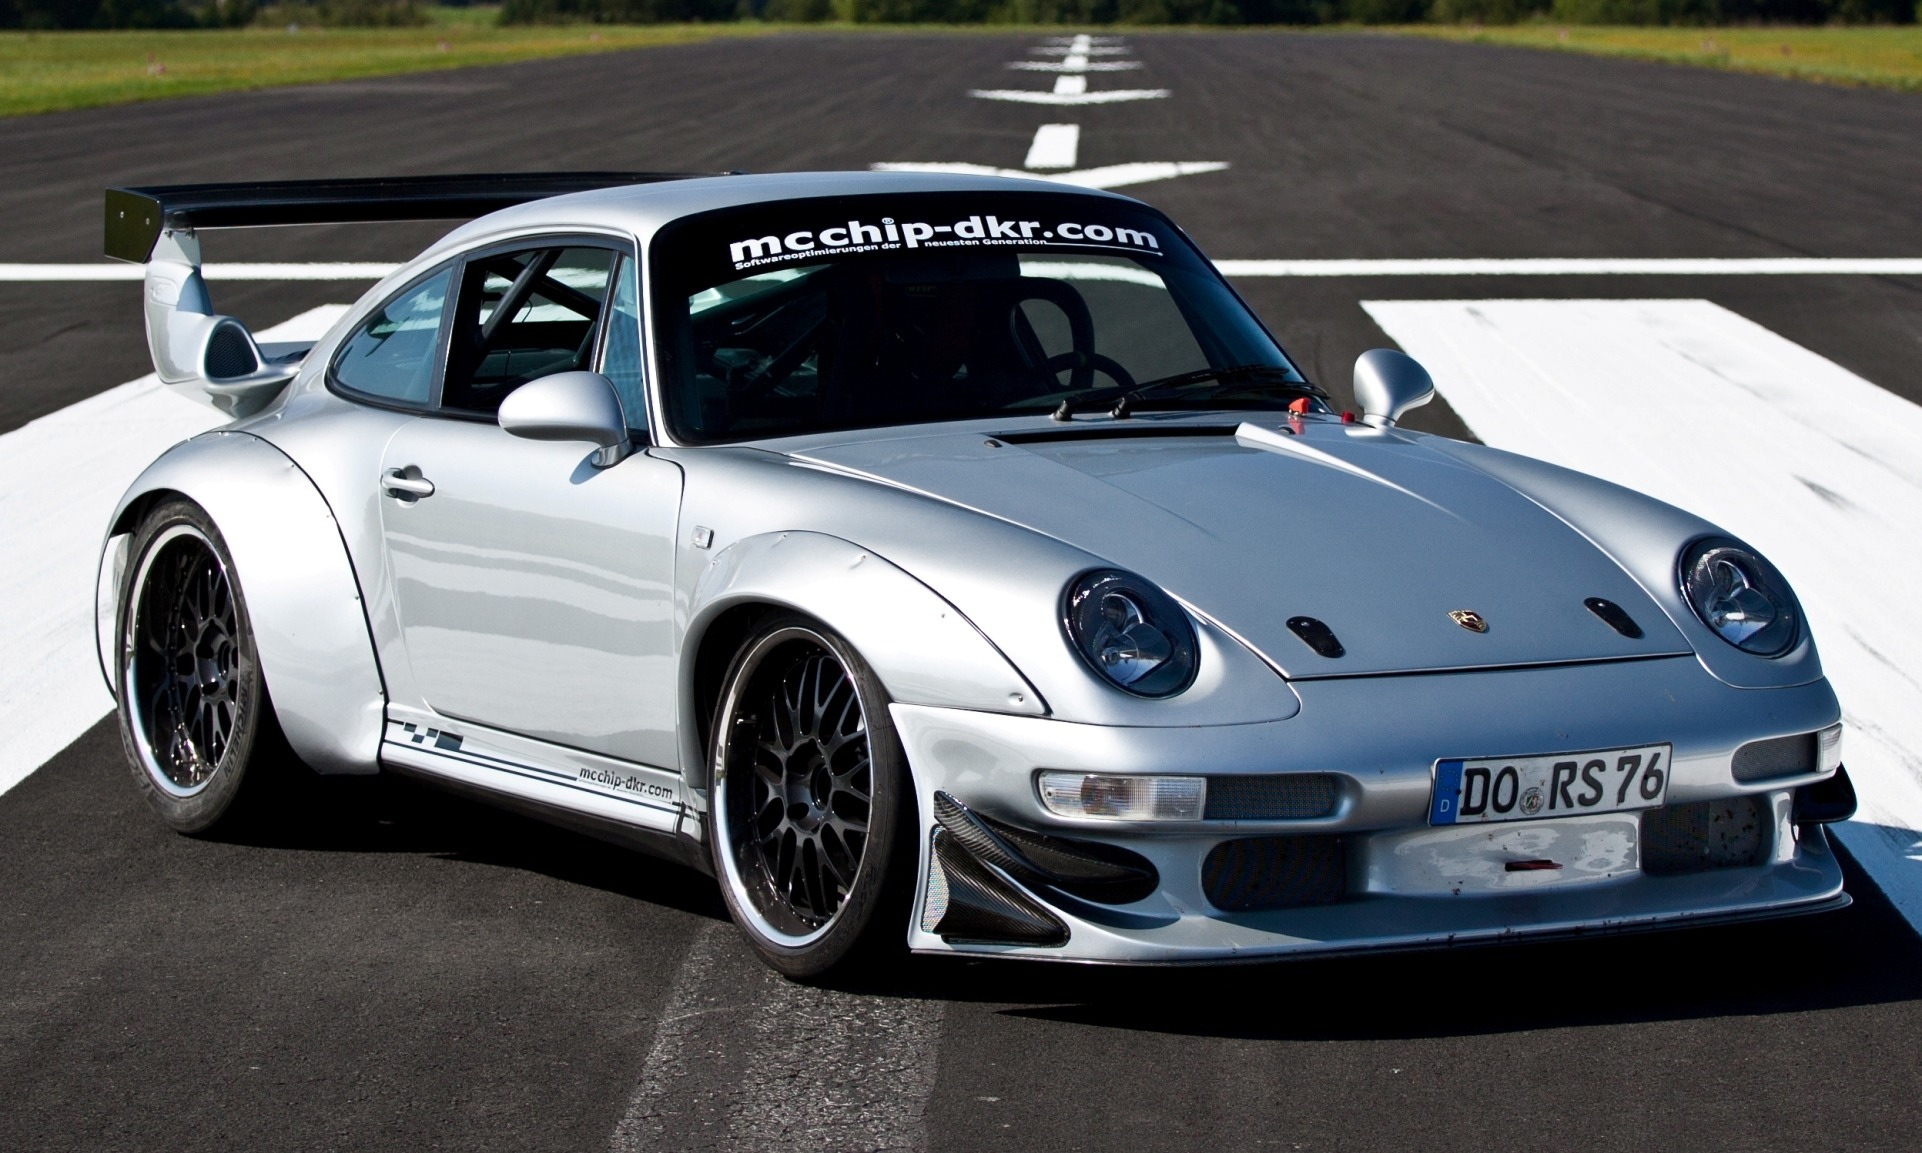 mcchip dkr porsche 993 gt2 mc600 widebody is rear drive. Black Bedroom Furniture Sets. Home Design Ideas